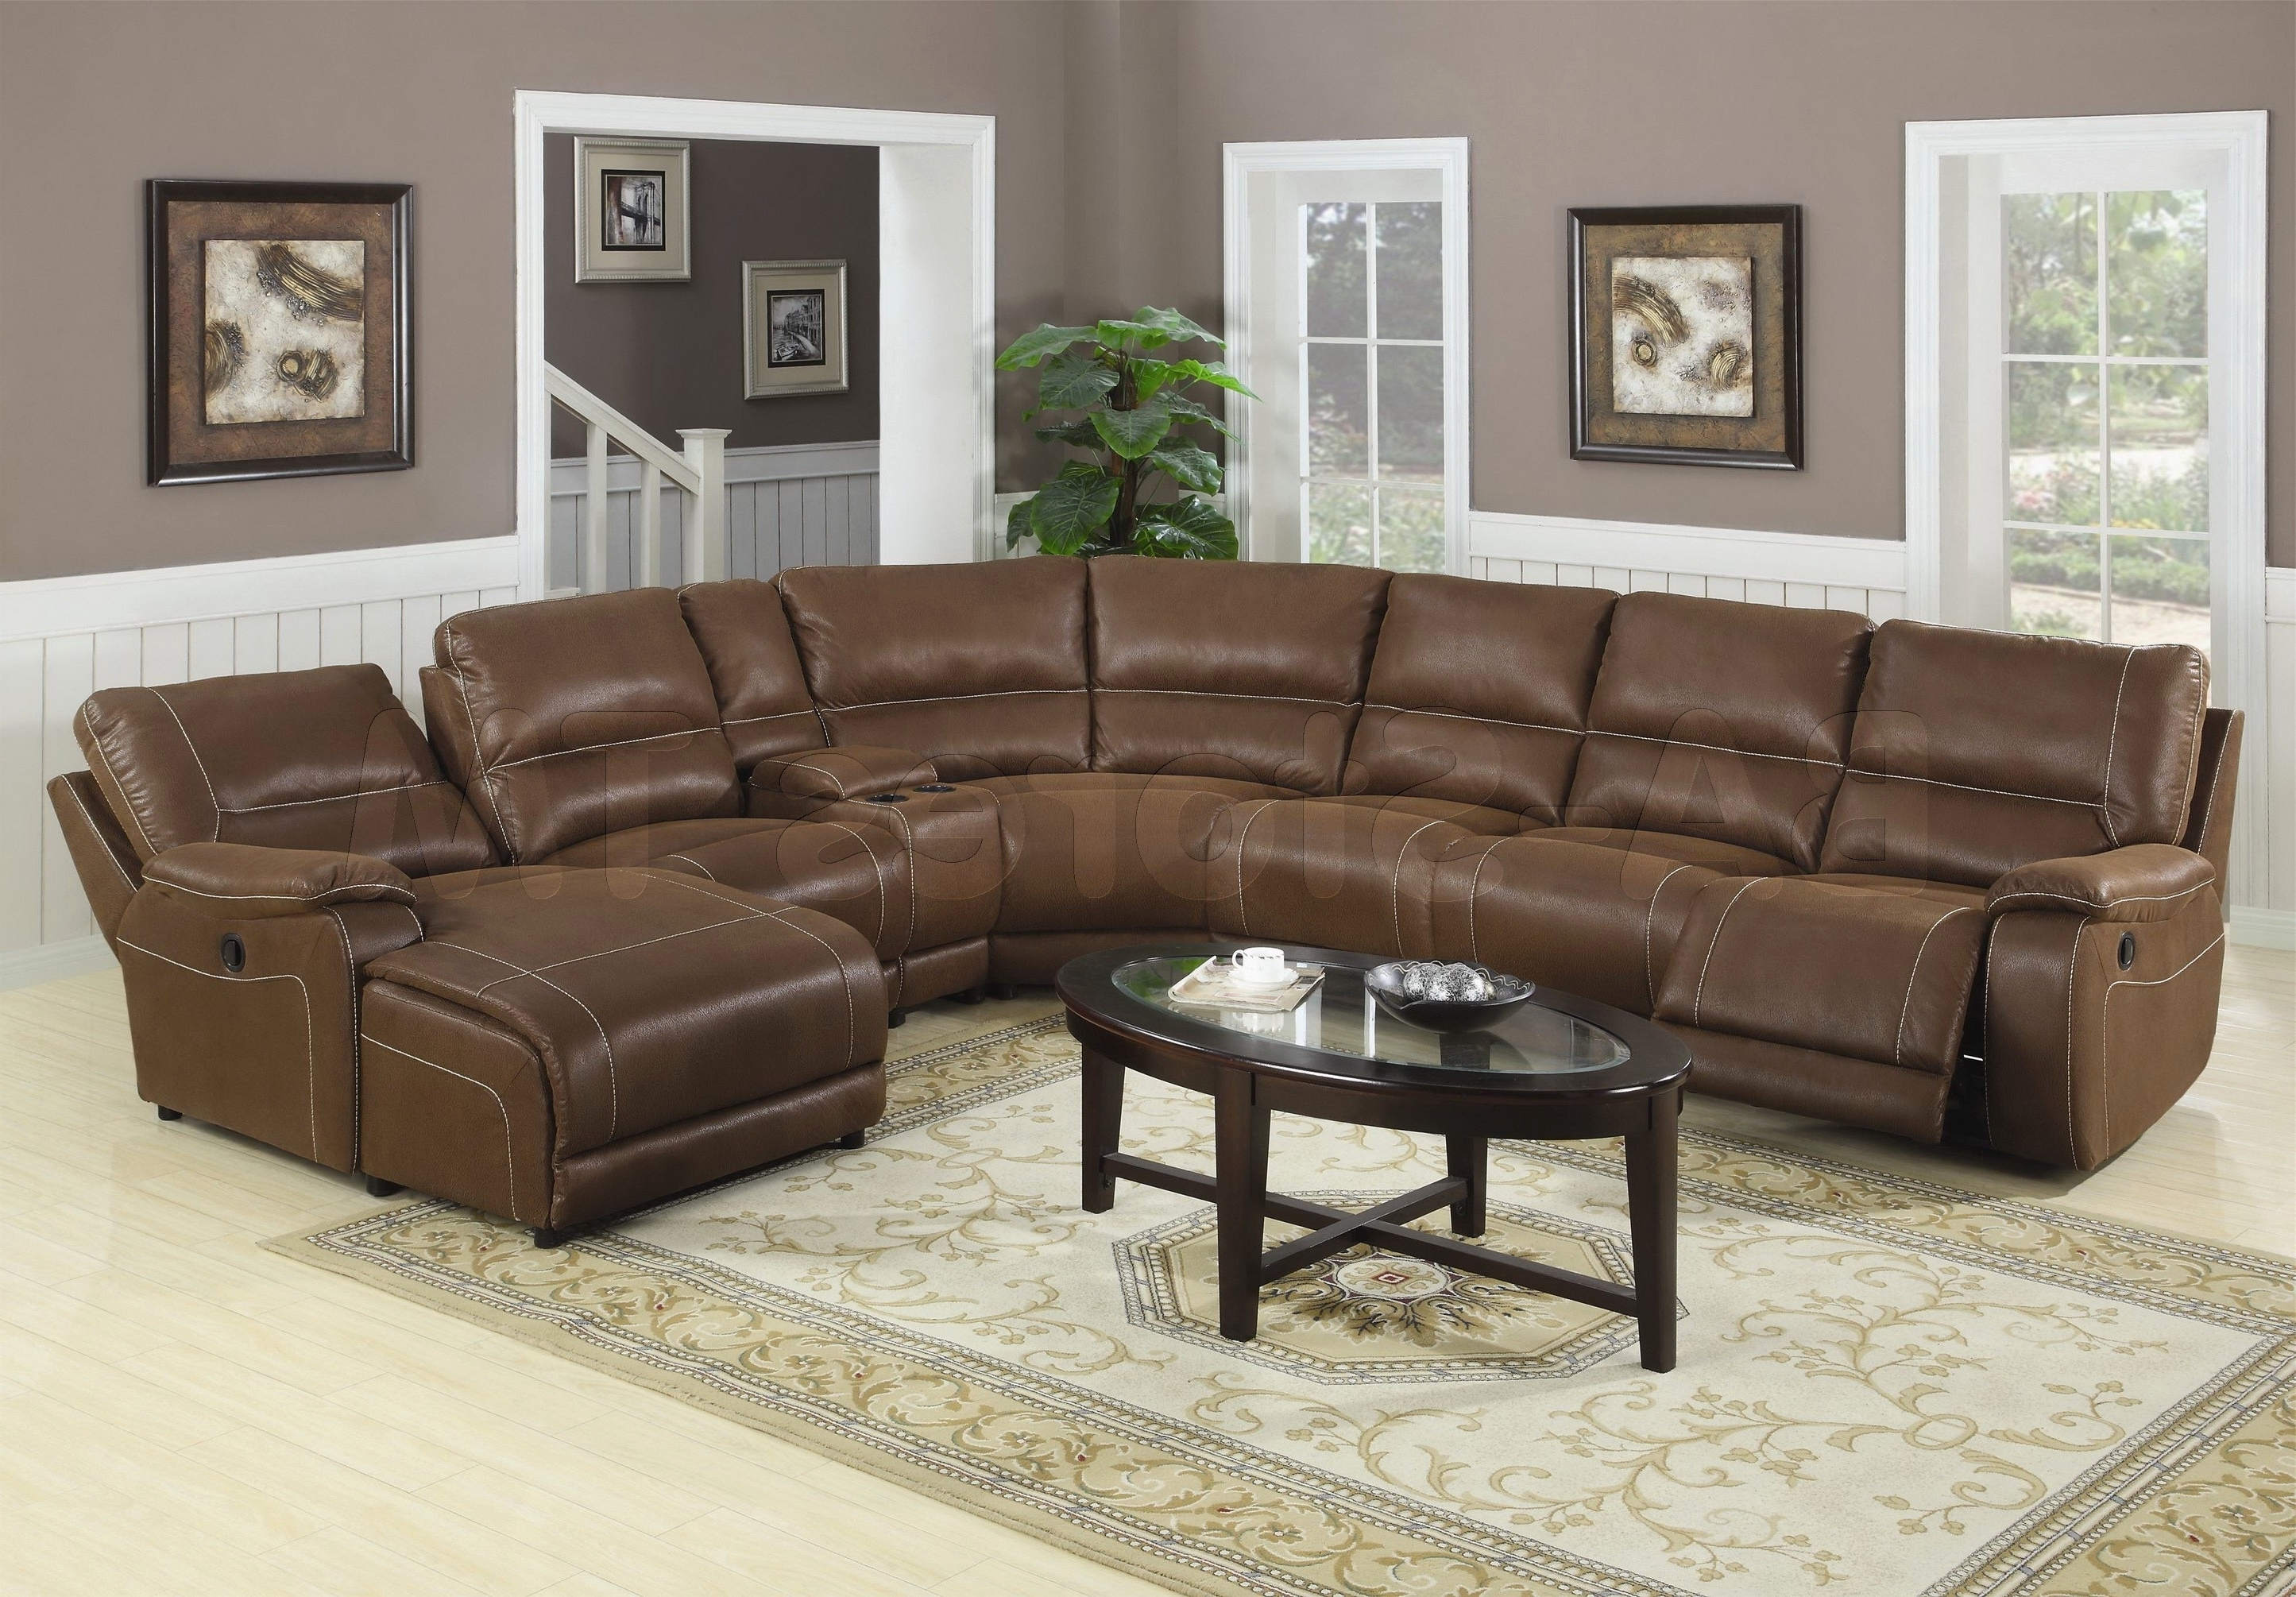 Leather And Cloth Sofas Regarding Preferred Inspirational Leather Cloth For Sofa 2018 – Couches And Sofas Ideas (View 12 of 20)